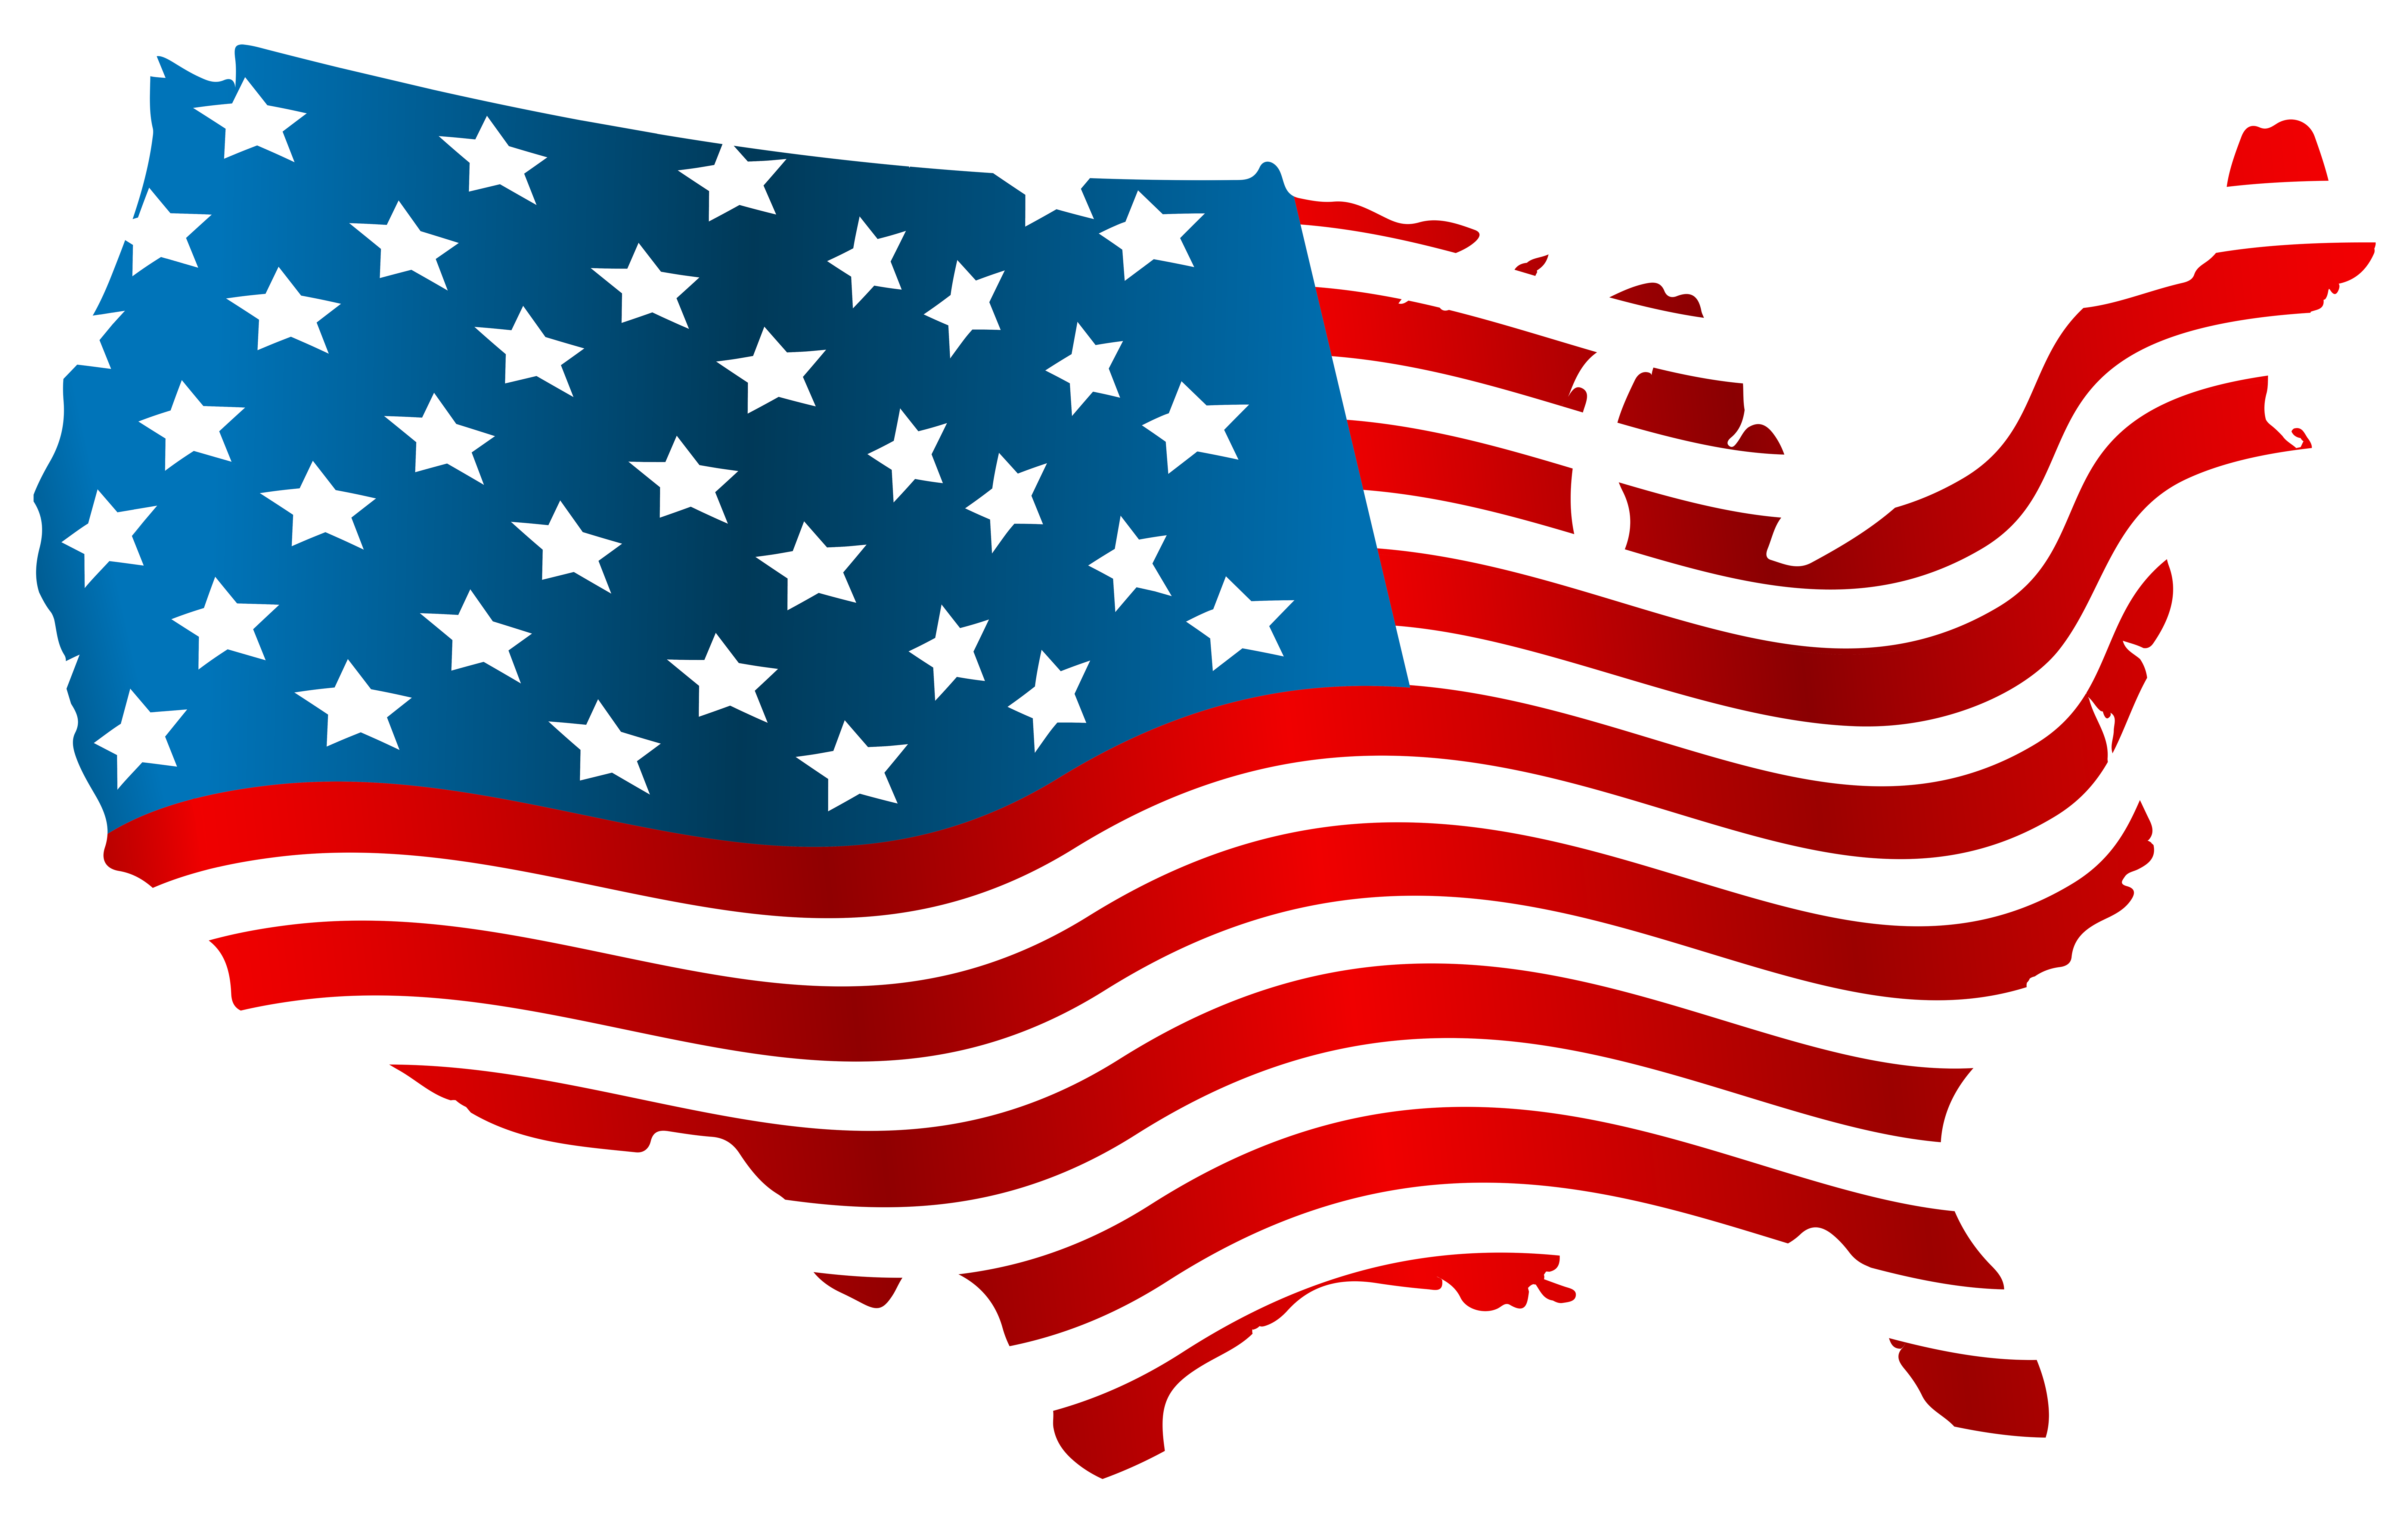 American flag horseshoe clipart banner freeuse Flag of the United States Map Clip art - USA Flag Map PNG Clip Art ... banner freeuse